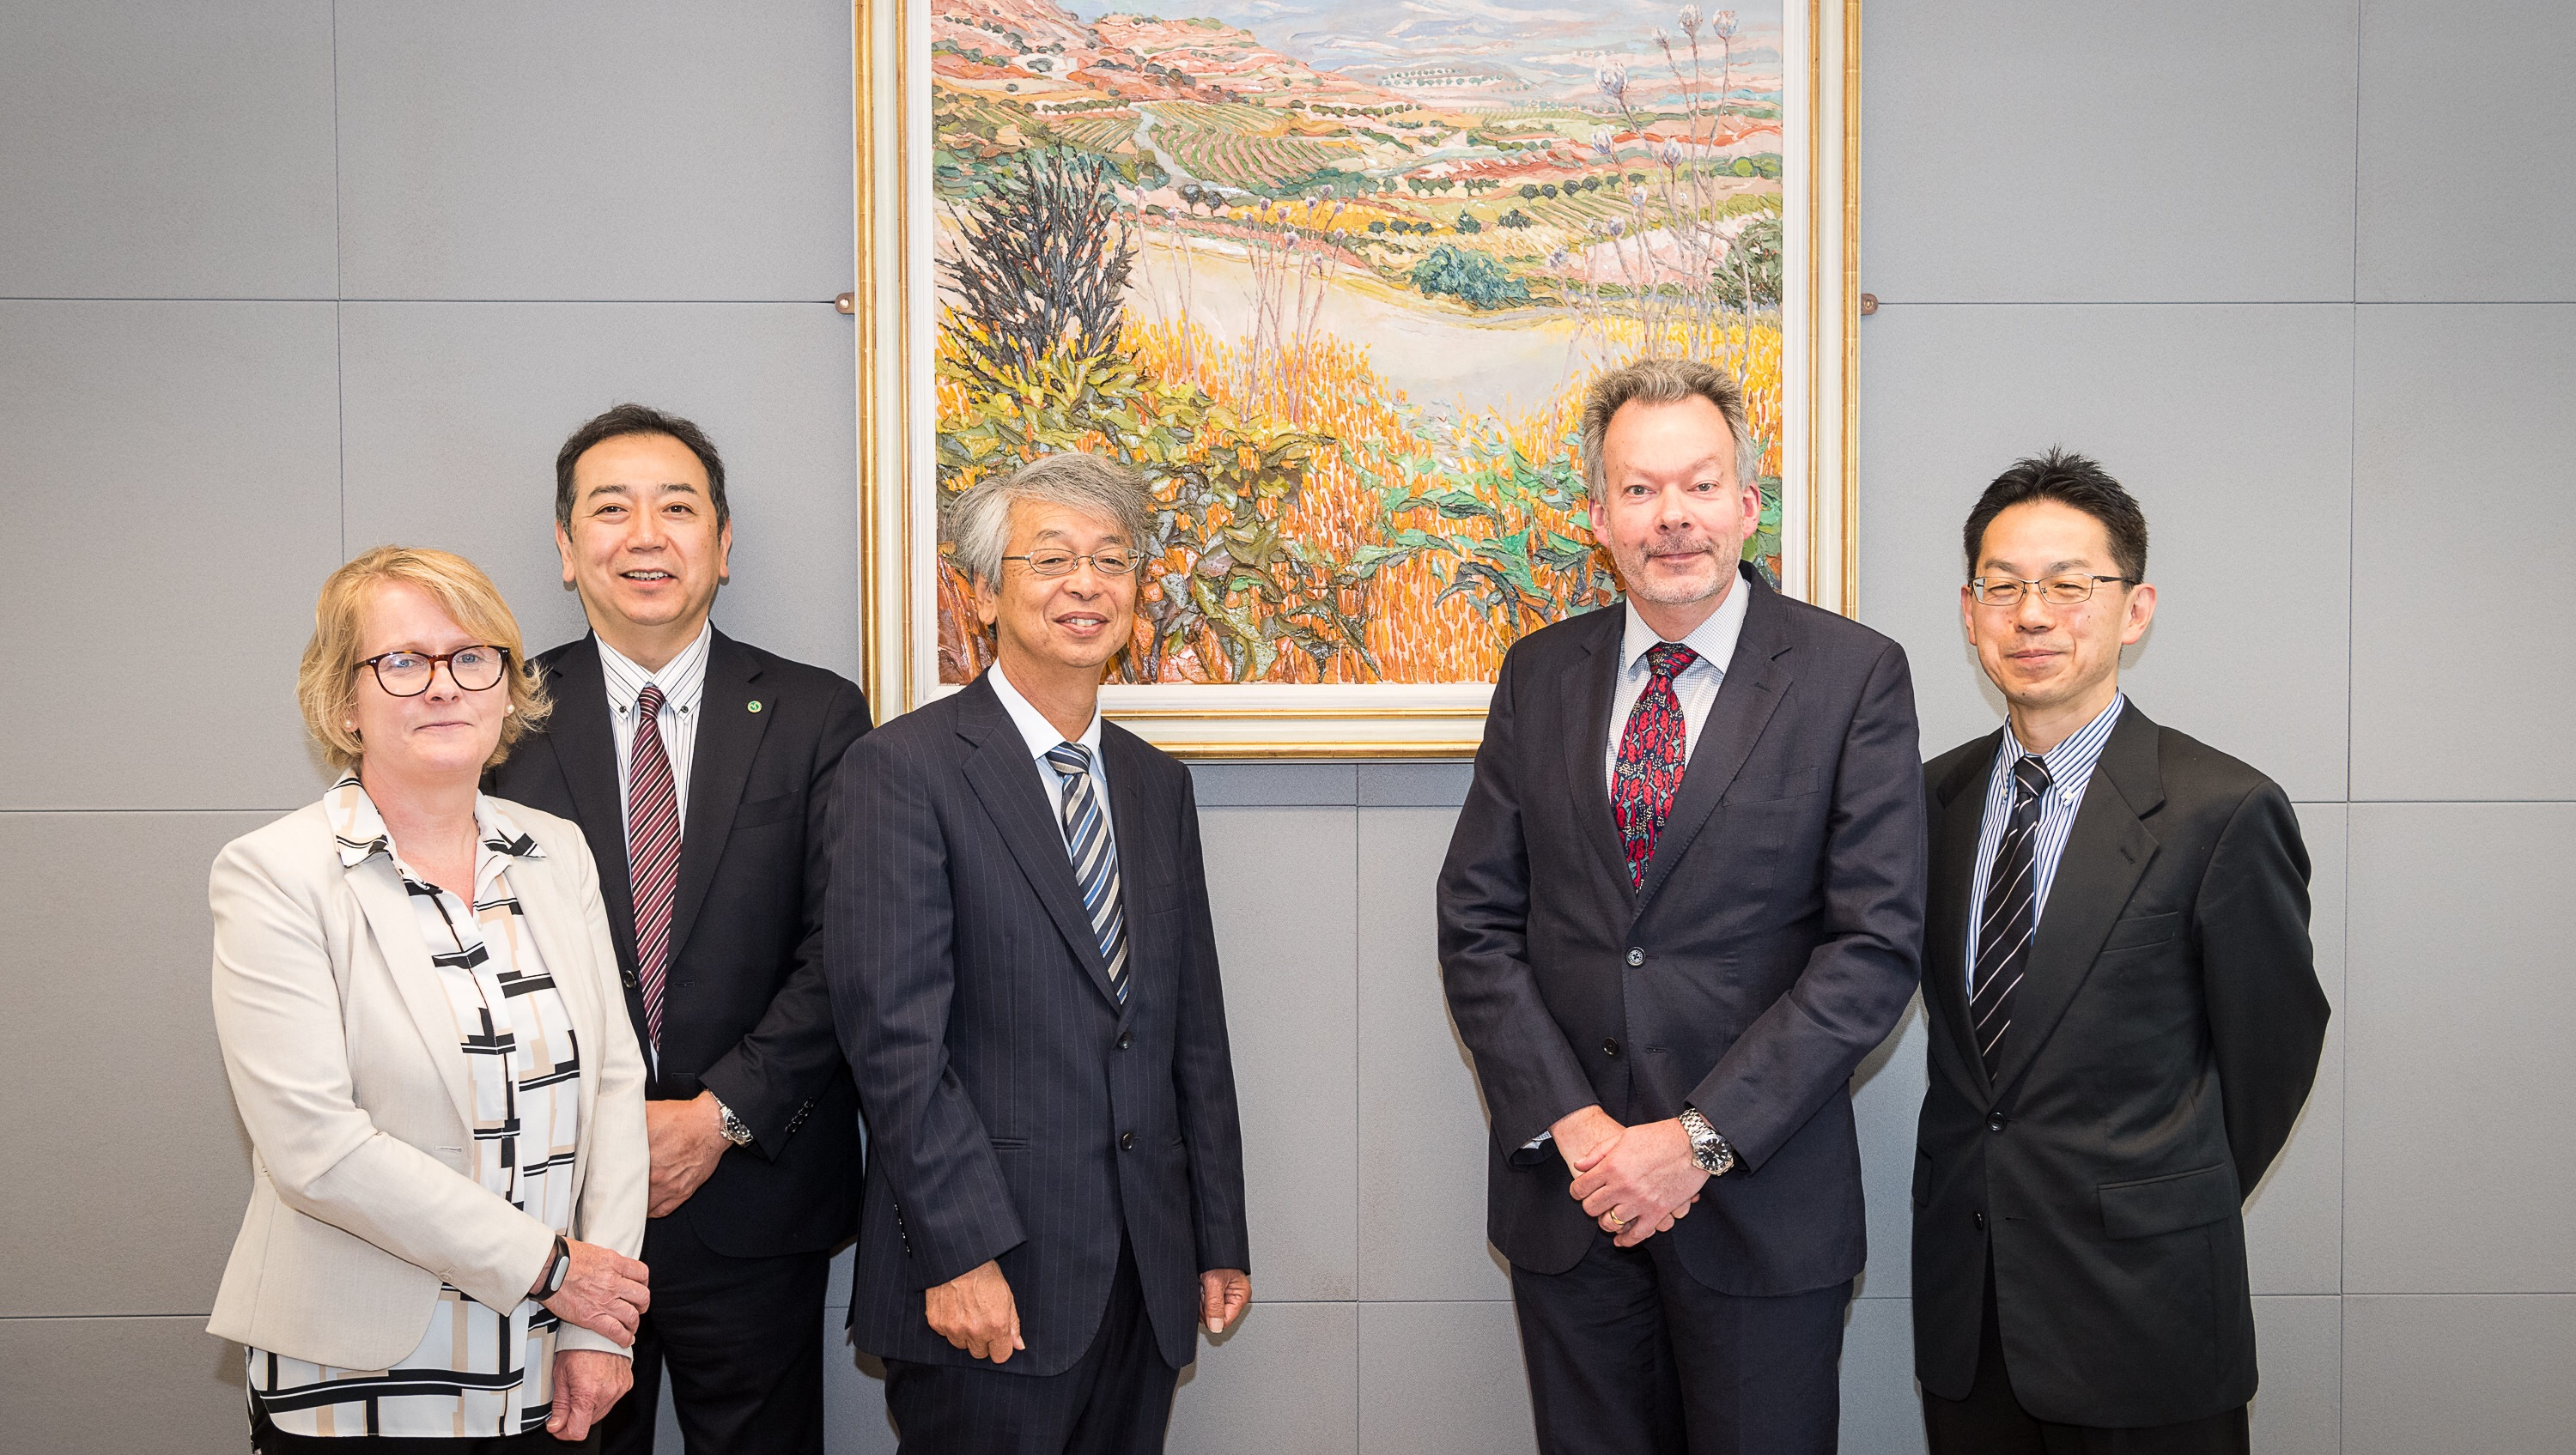 Photo showing delegates from Yamaguchi University being welcomed by colleagues